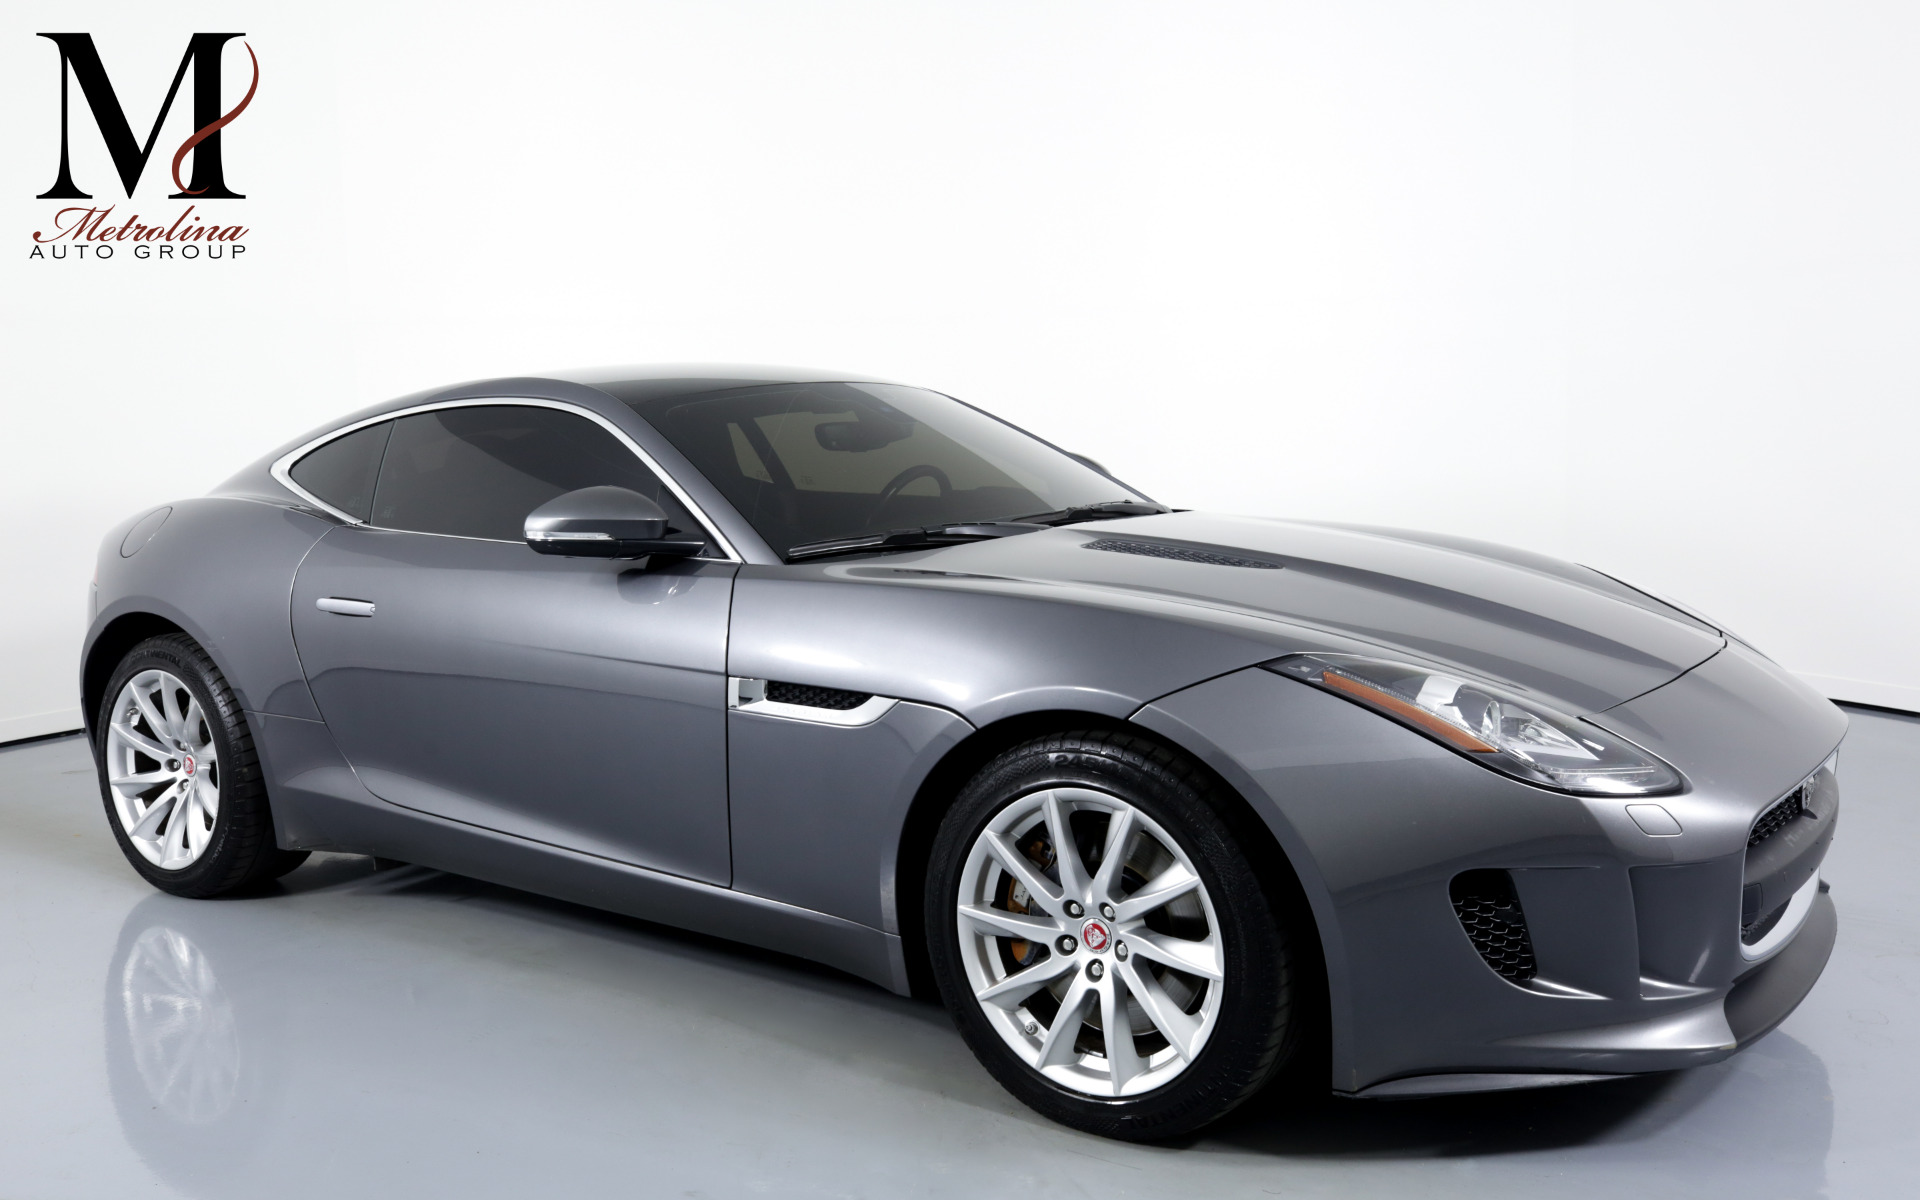 Used 2016 Jaguar F-TYPE for sale $29,996 at Metrolina Auto Group in Charlotte NC 28217 - 1